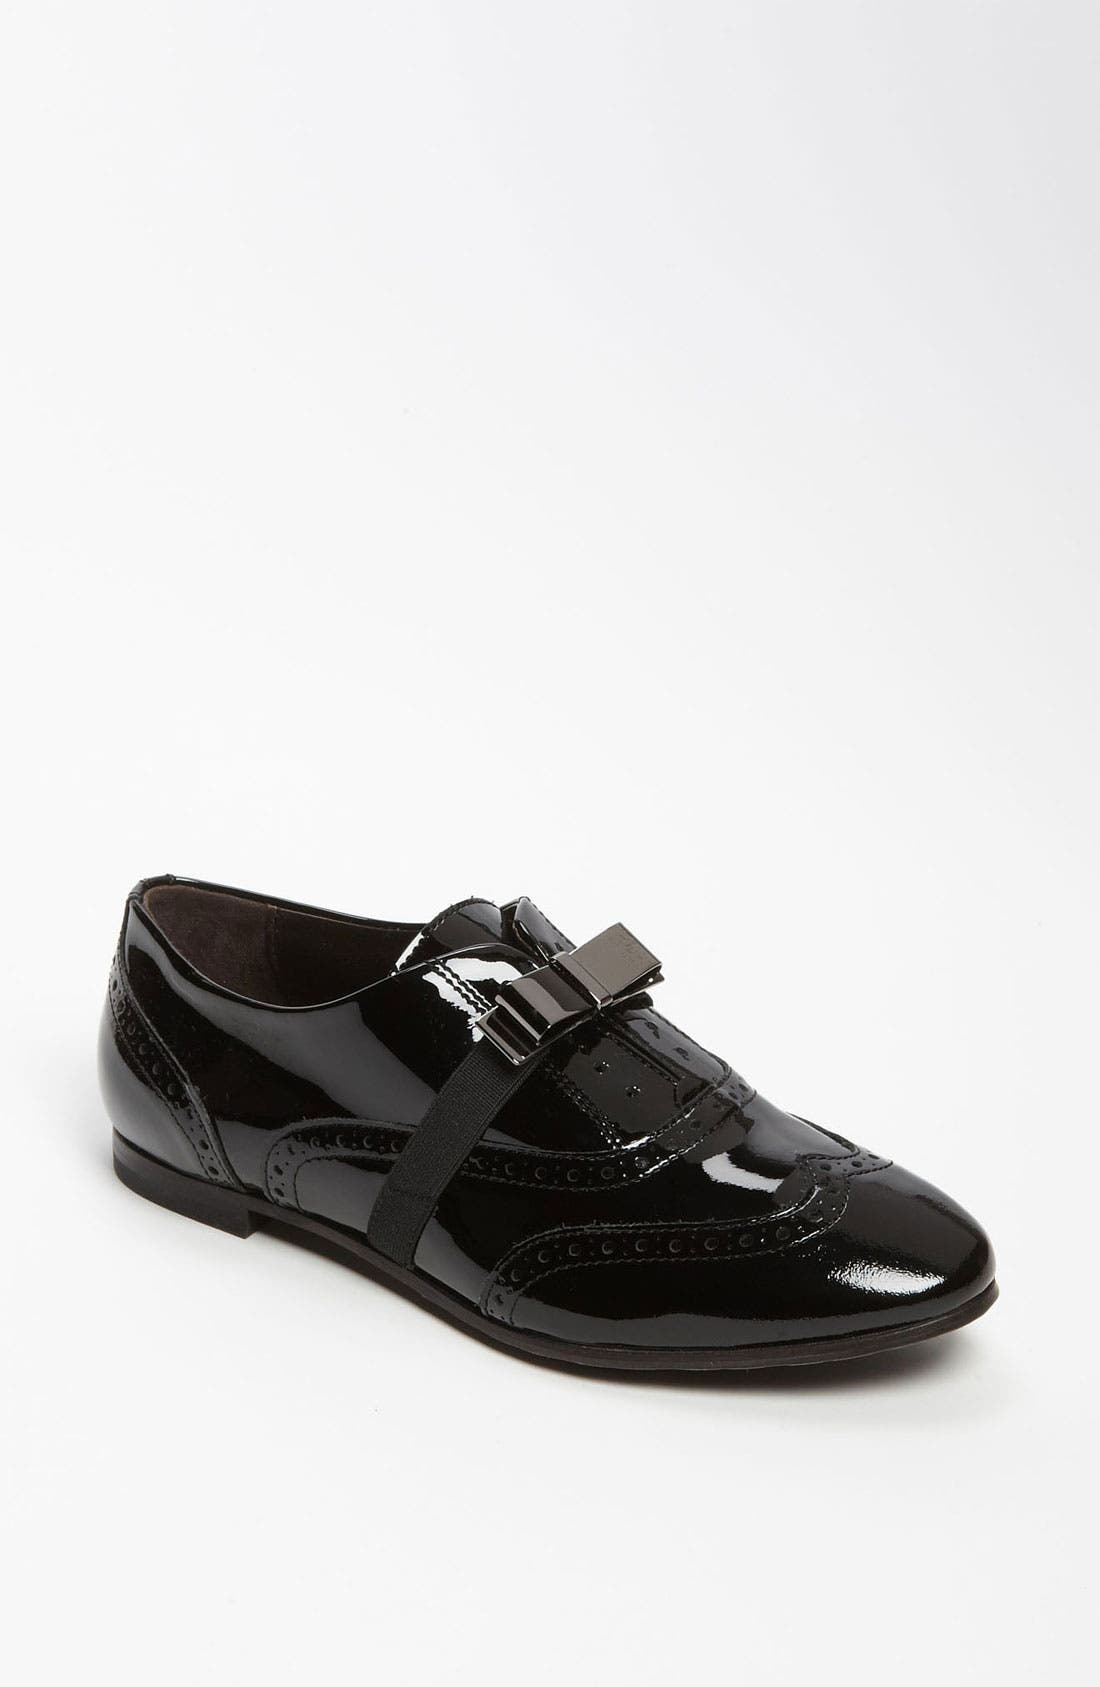 Main Image - Attilio Giusti Leombruni Oxford Slip-On